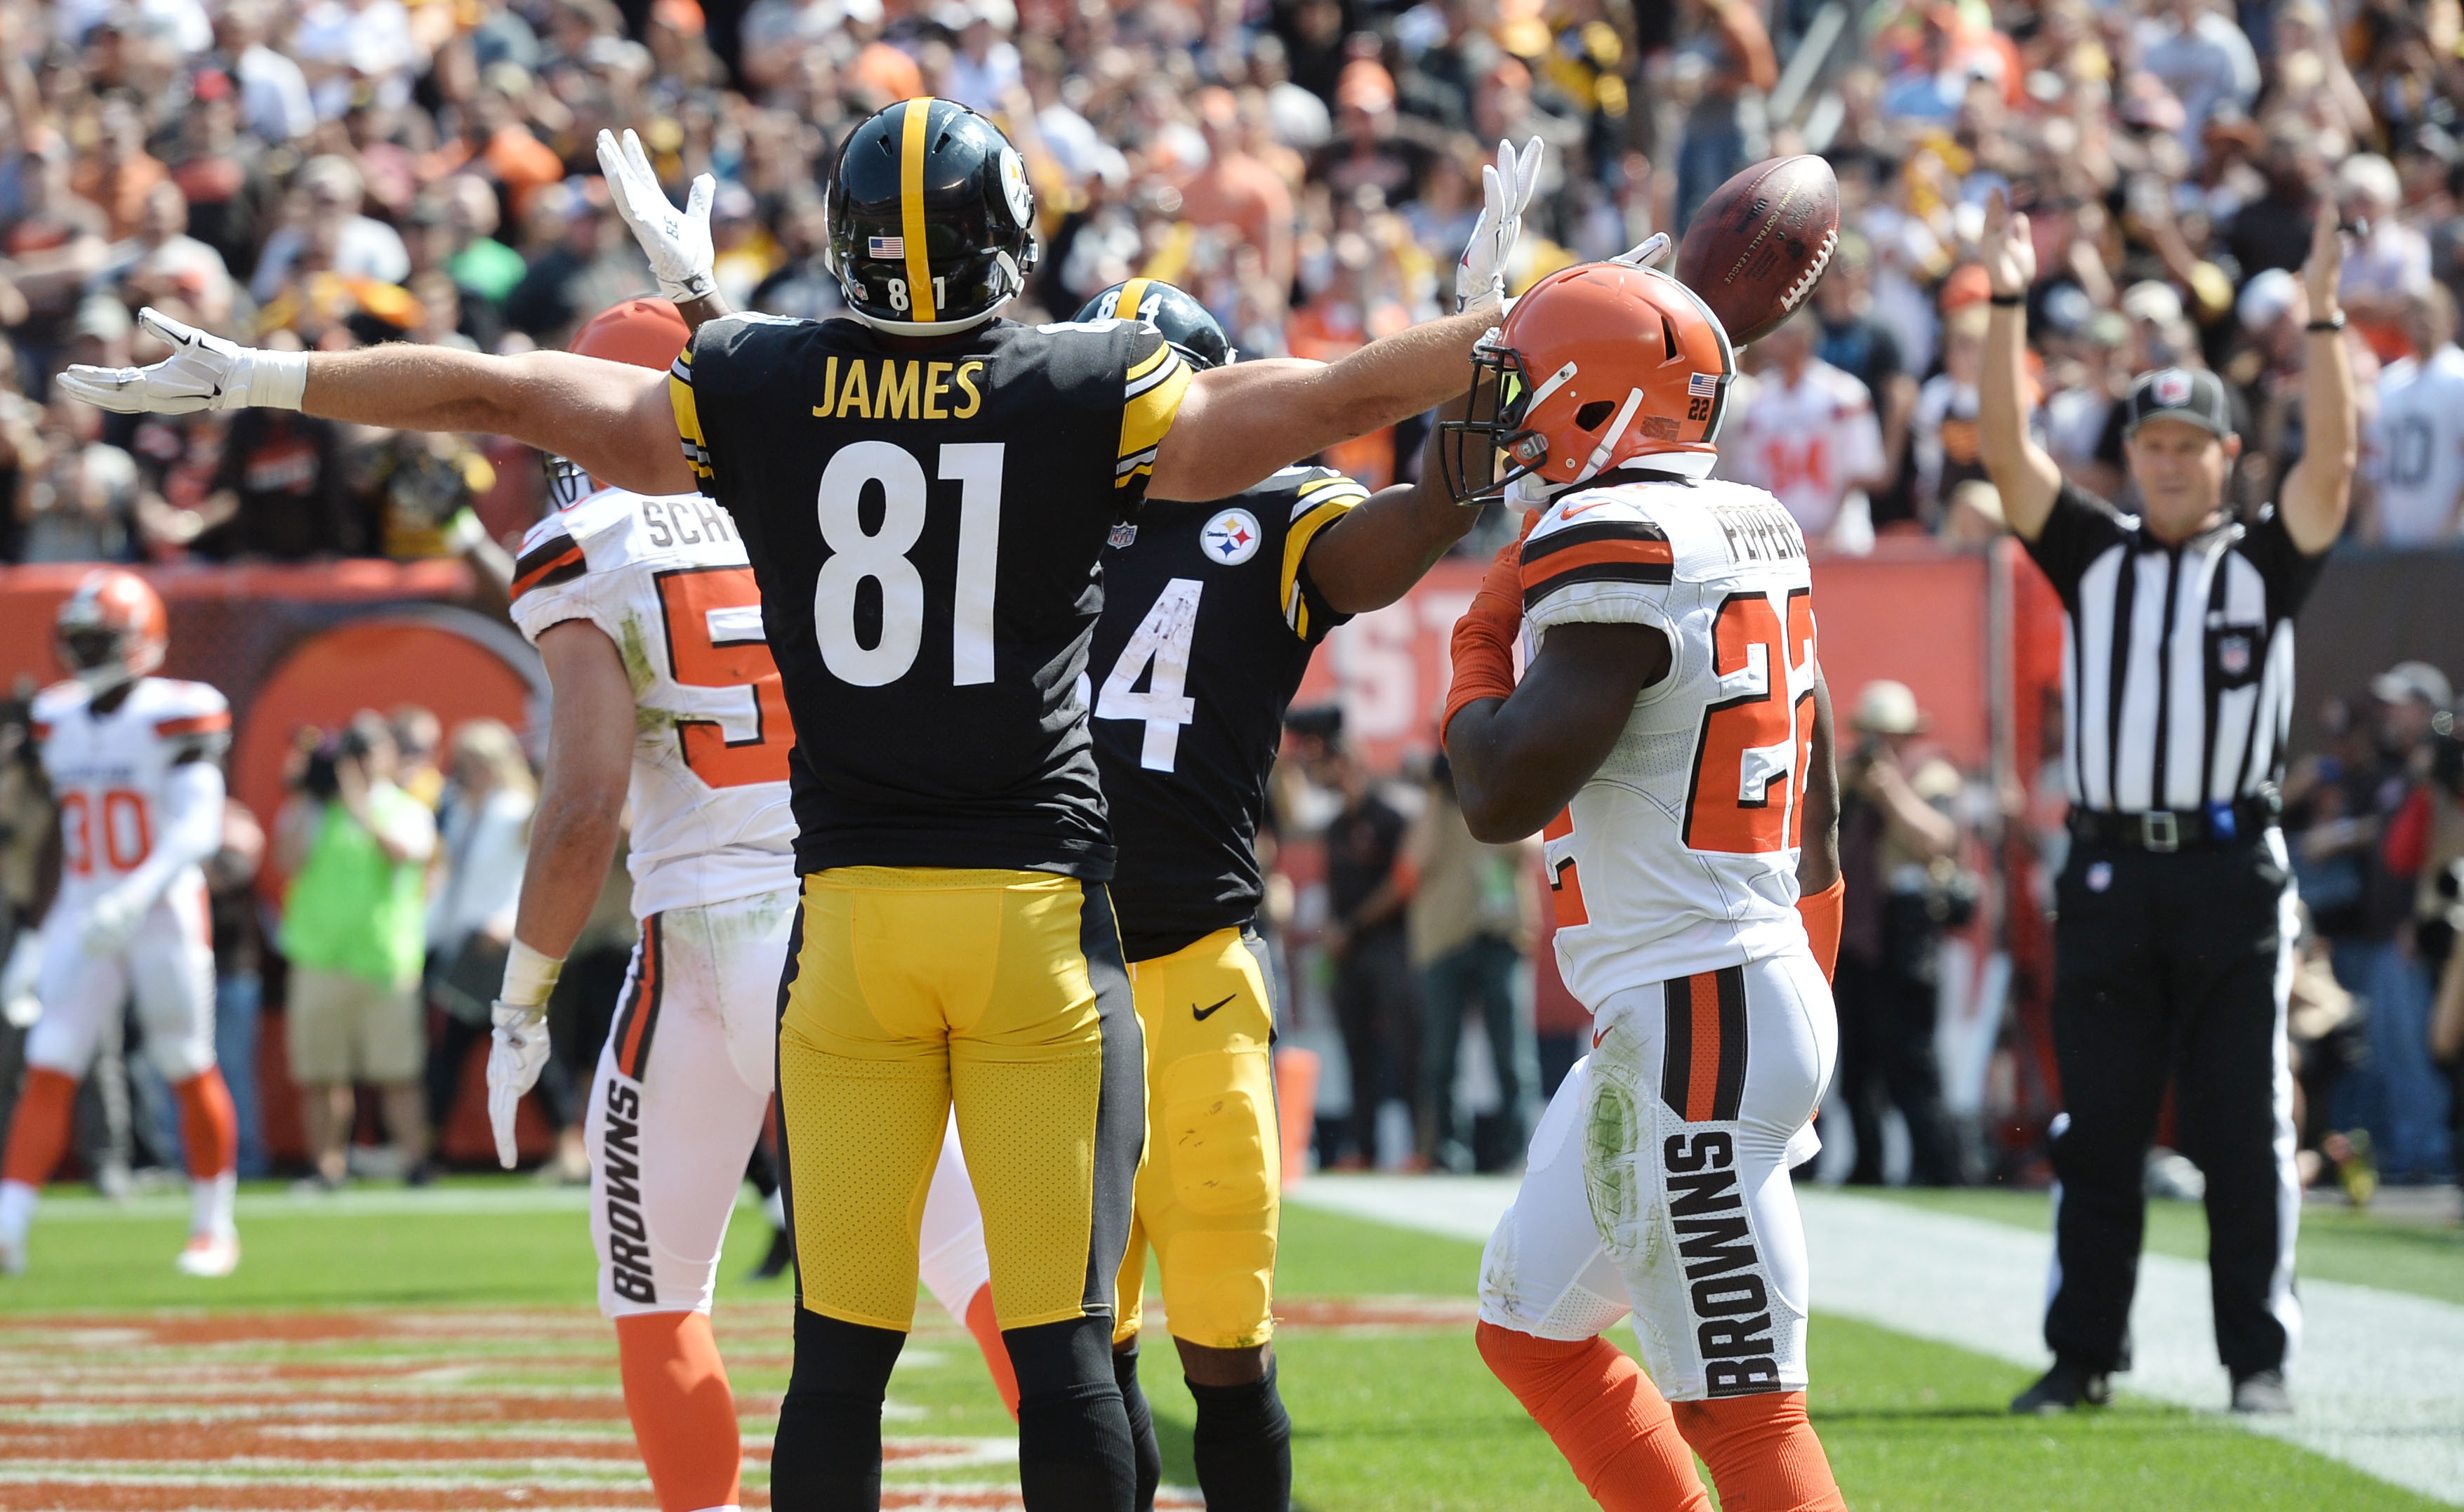 NFL: Pittsburgh Steelers at Cleveland Browns